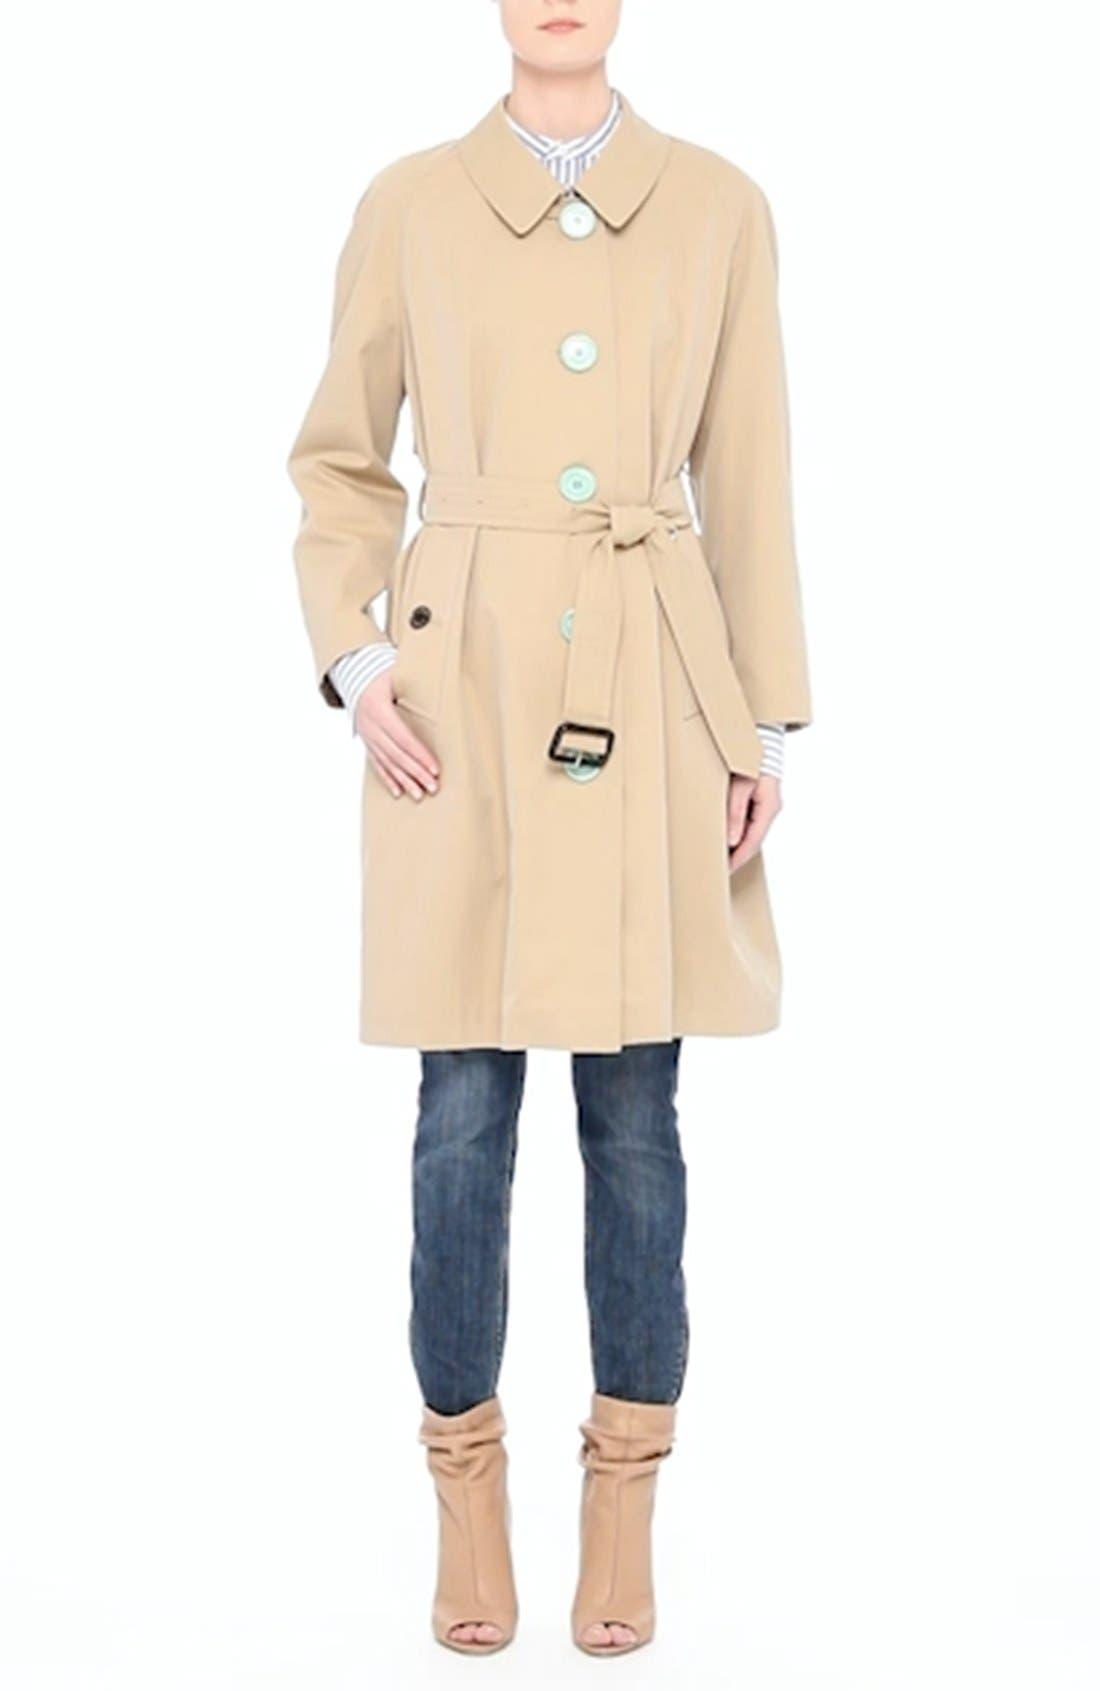 Brinkhill Trench Coat,                             Alternate thumbnail 8, color,                             250